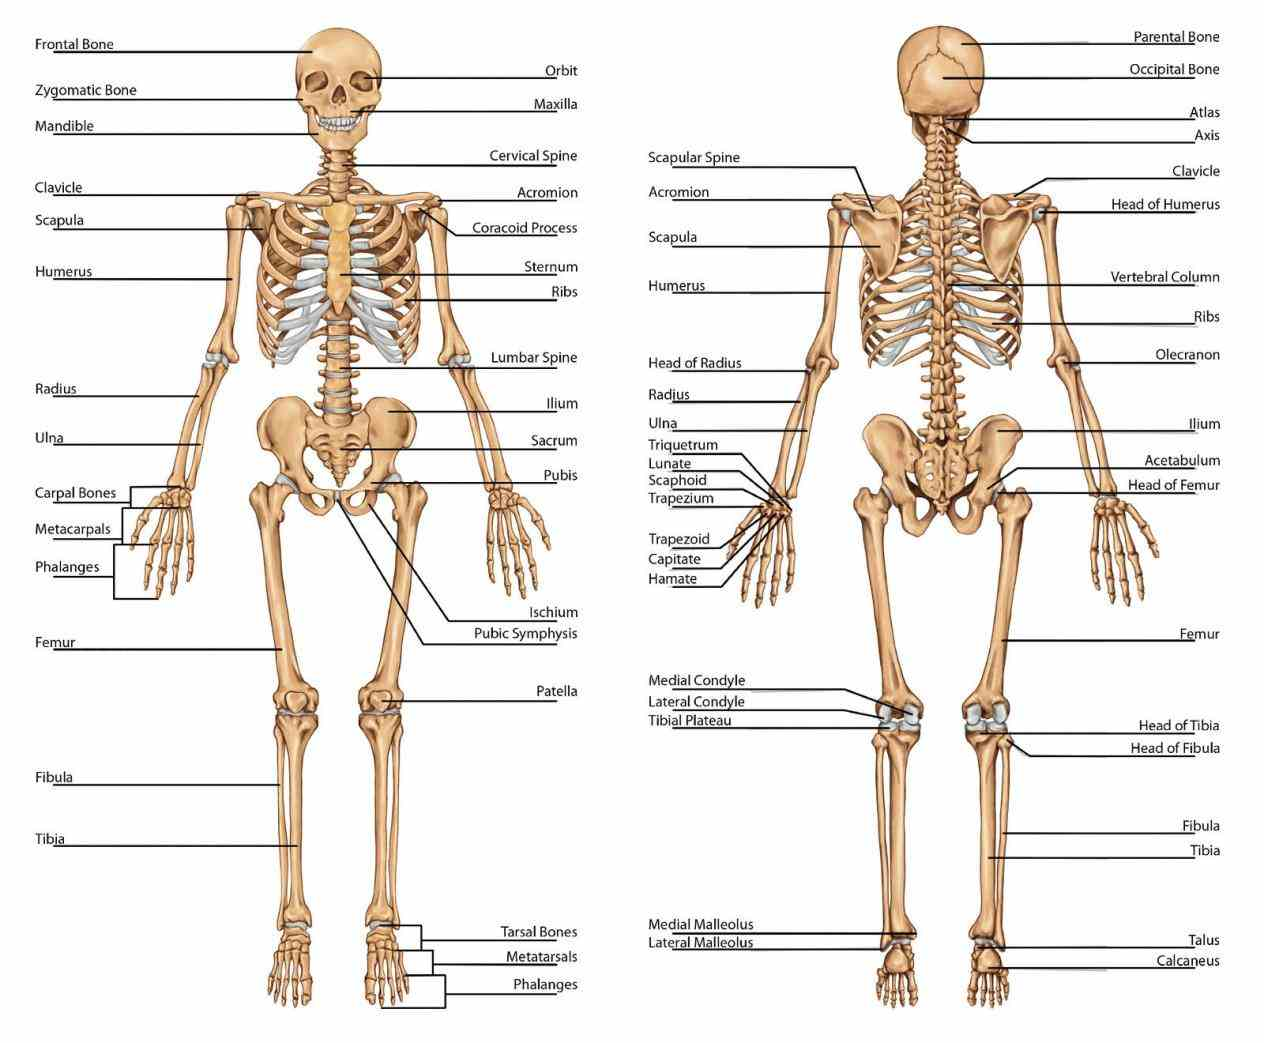 our bodies shape protection other systems bone Anatomy Of The Bones In The Human Body tissue osseous differs greatly